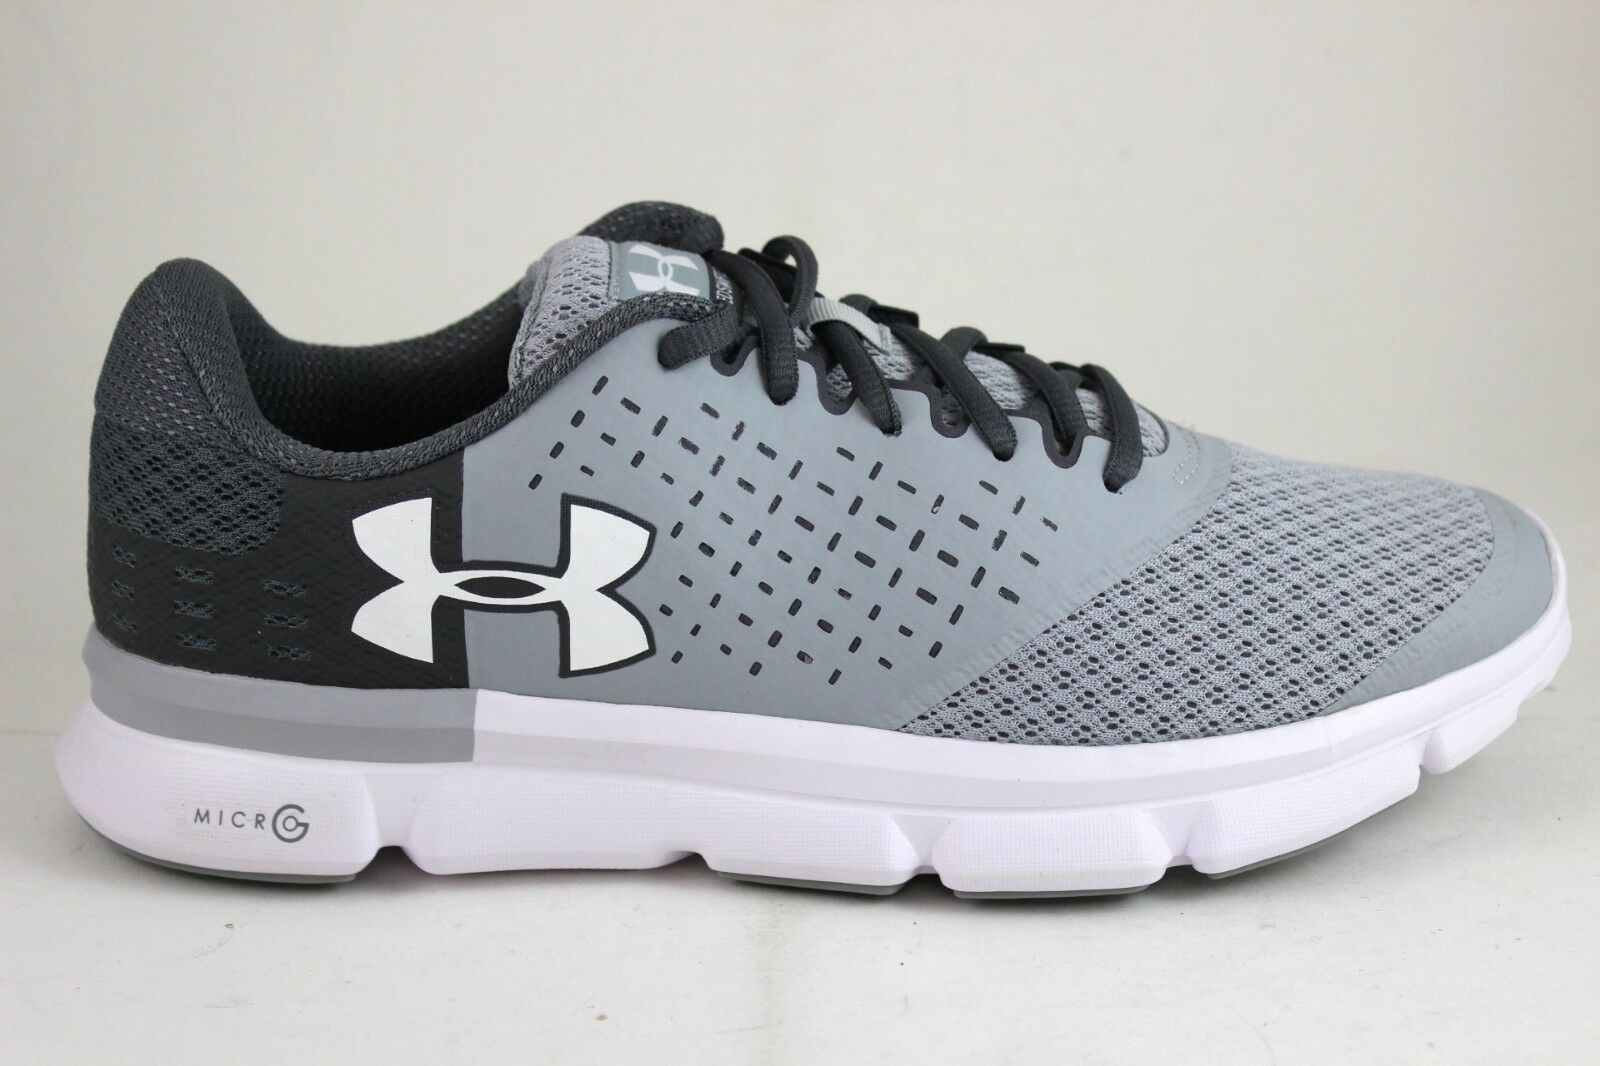 Under Armour Damen 2 Micro G Speed Swift 2 Damen 1285498-942 Nagelneu in Karton 81fe8f